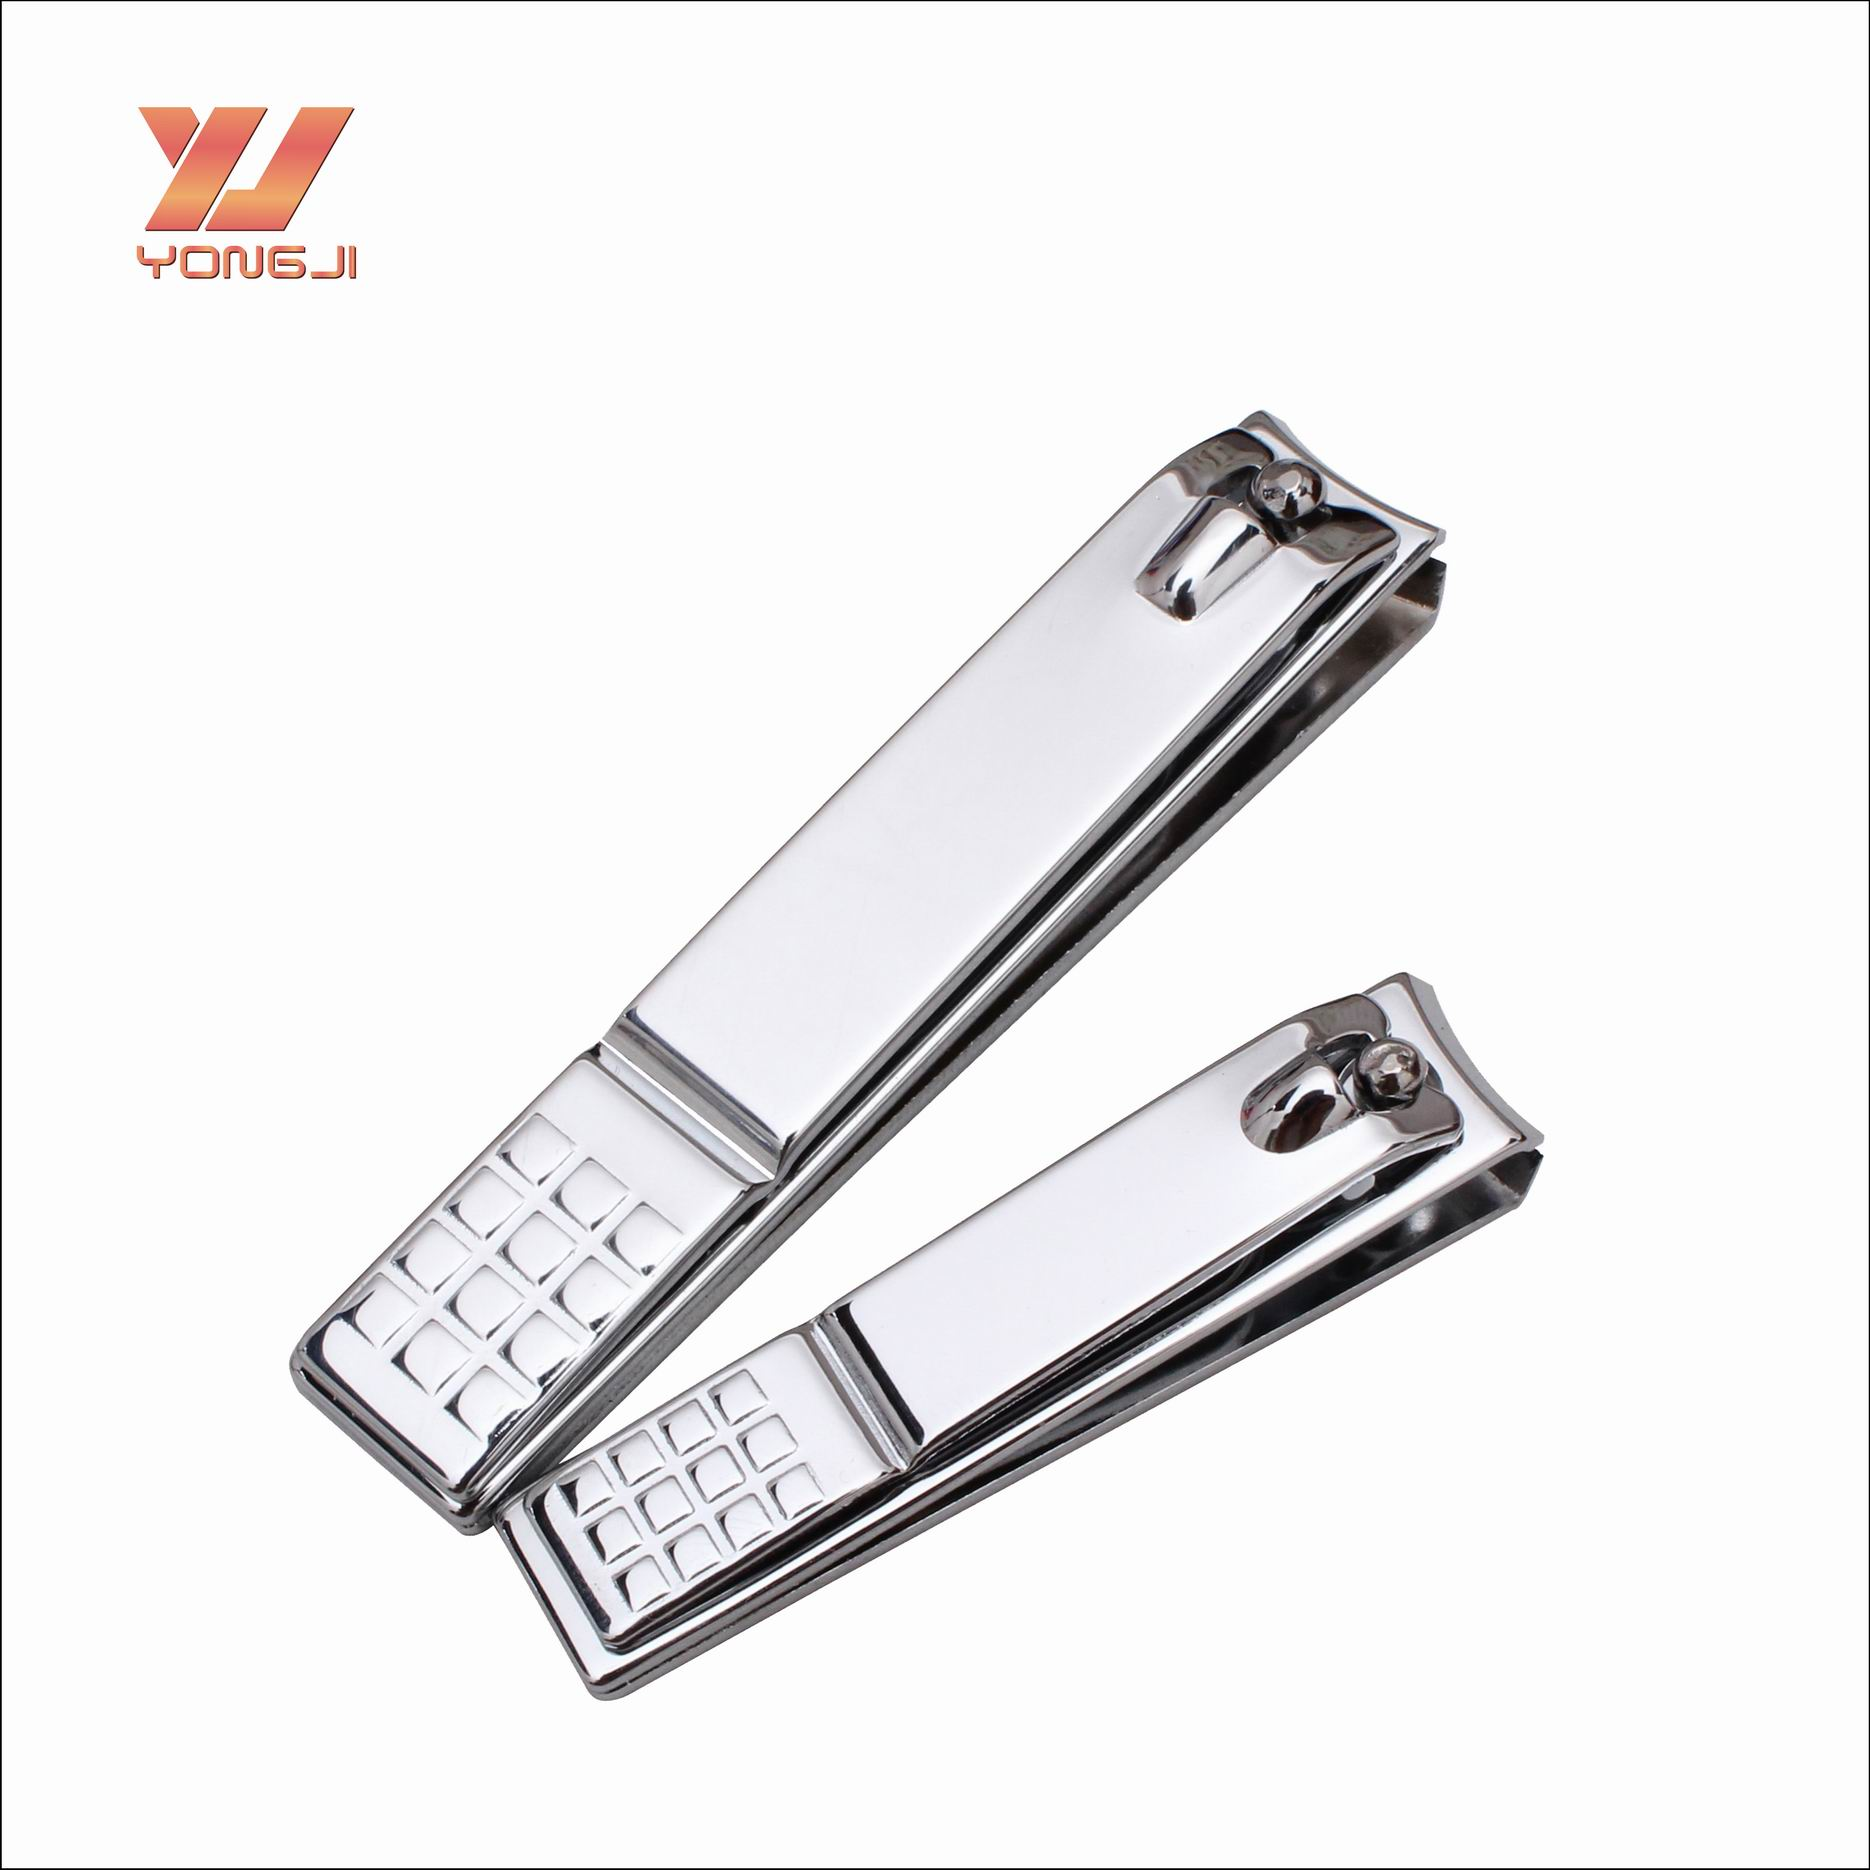 Long Handle Nail Clipper, Long Handle Nail Clipper Suppliers and ...